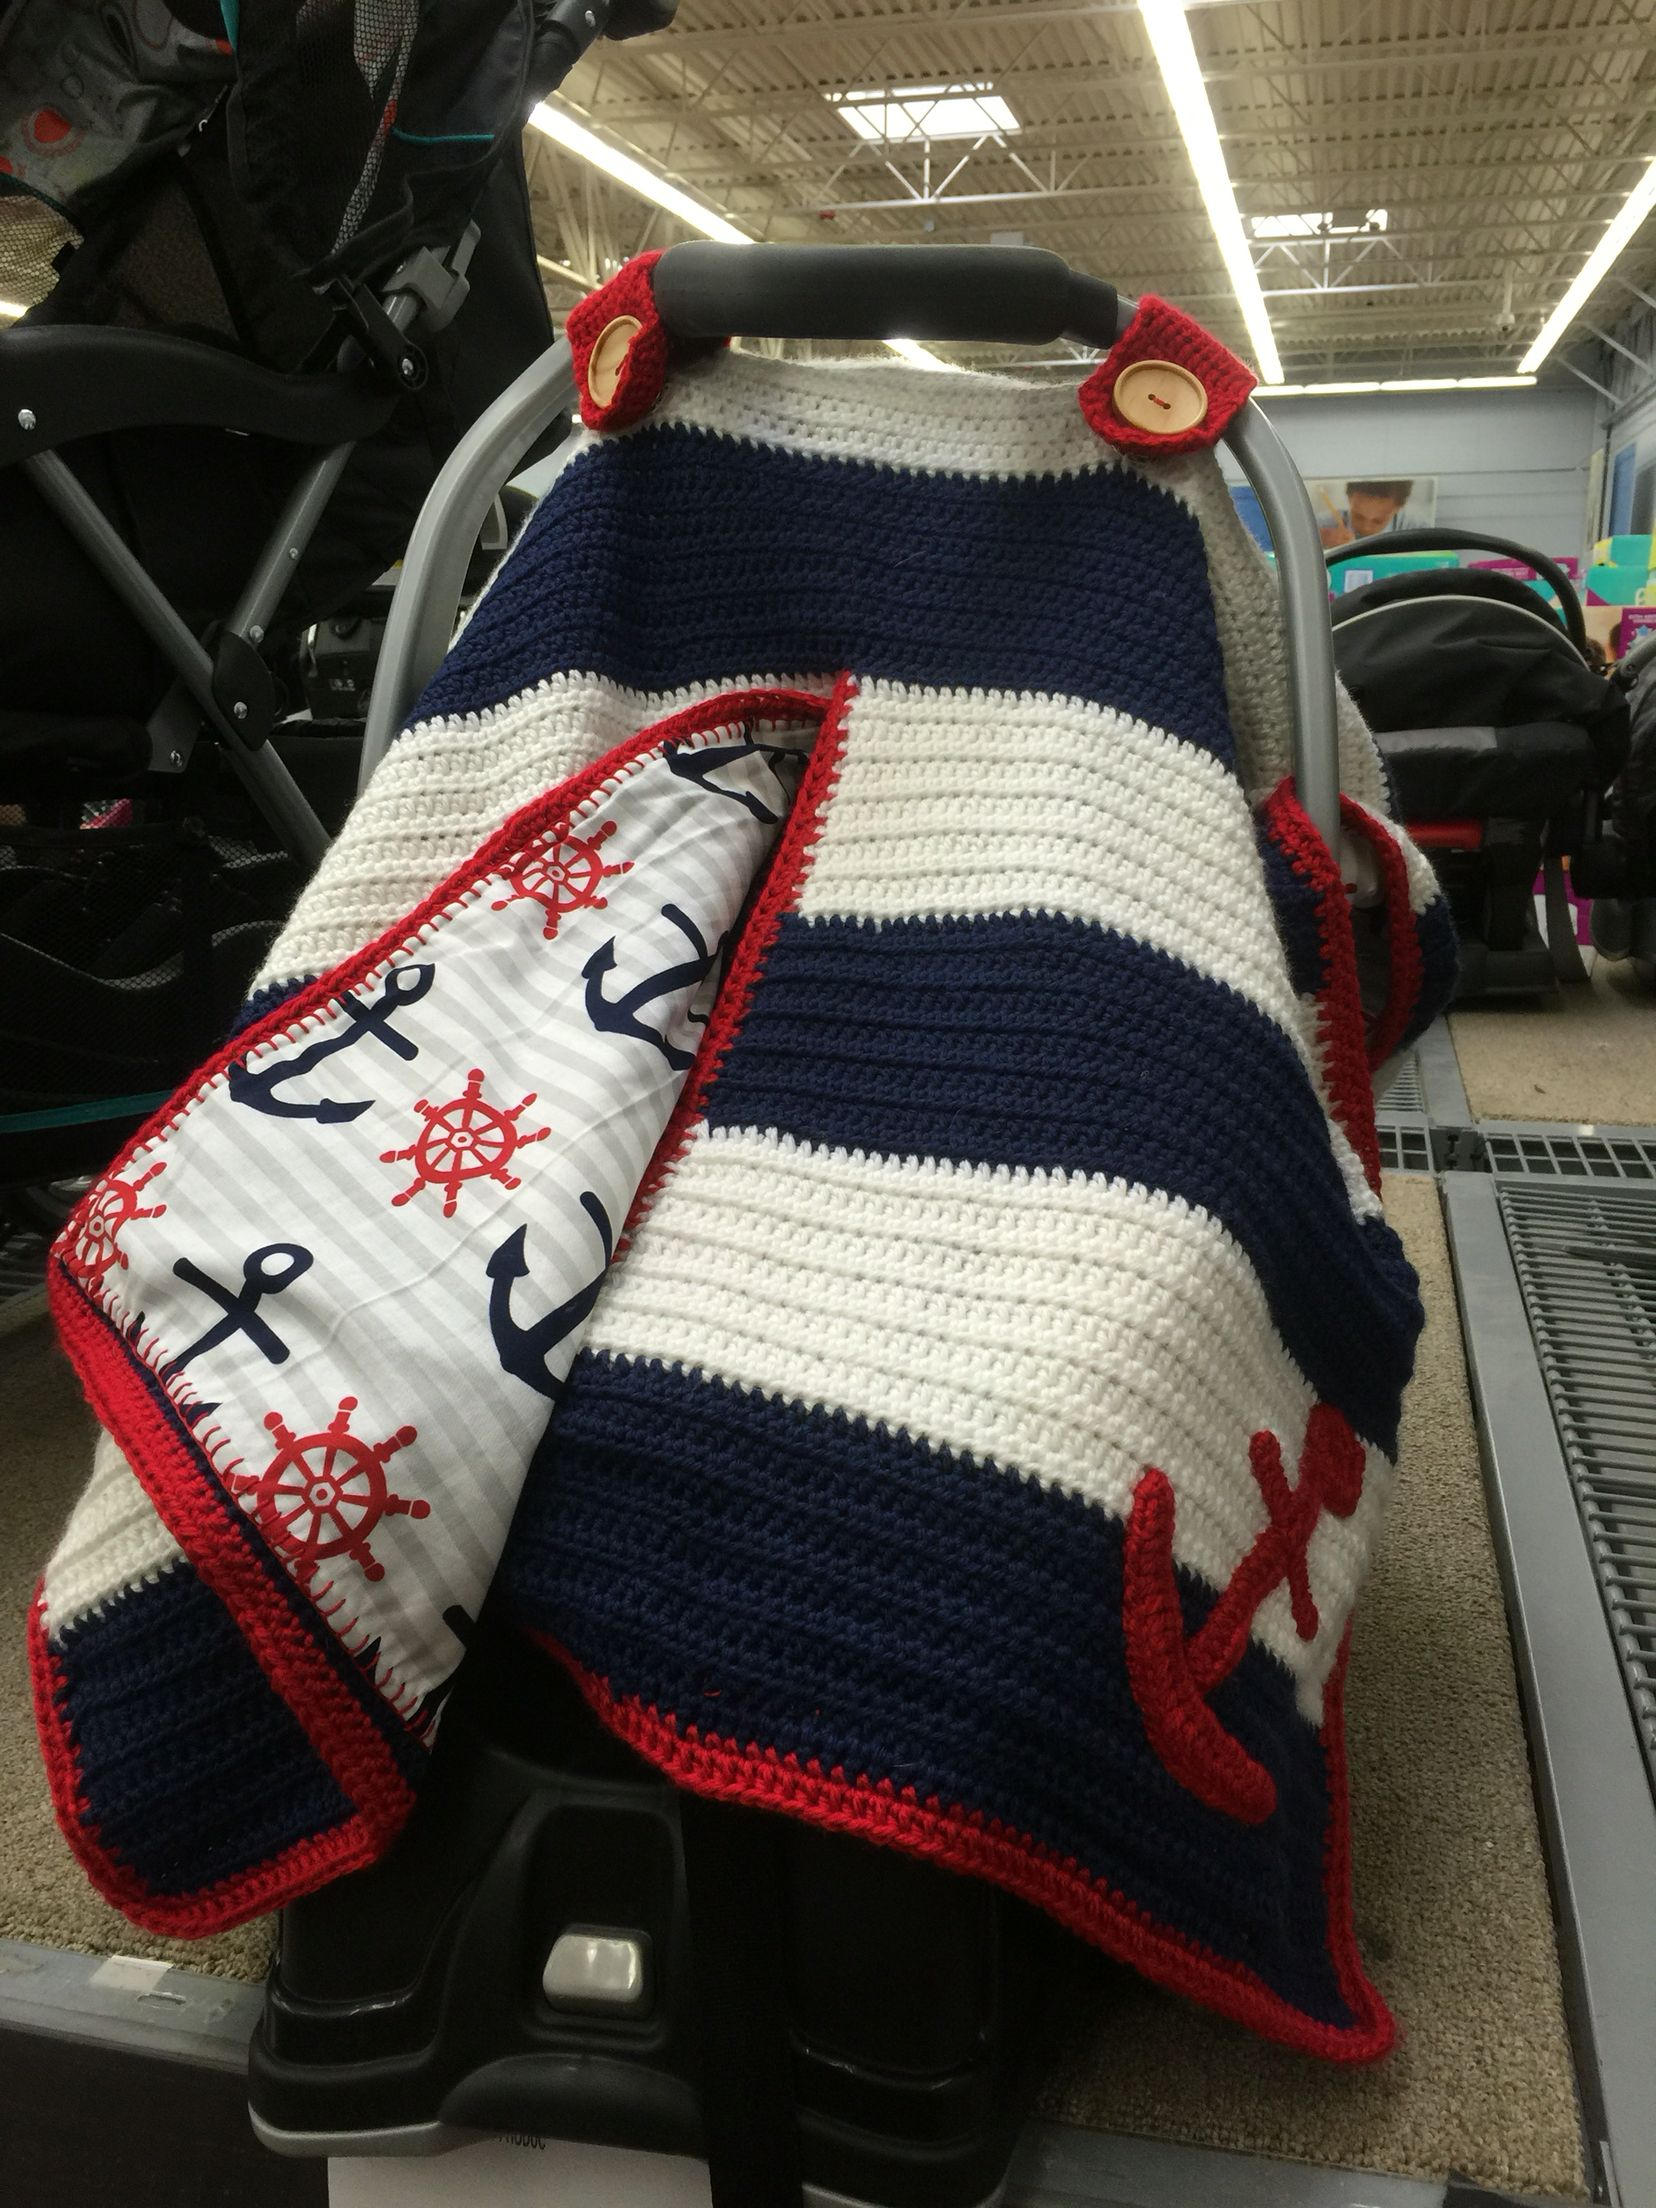 Crochet Baby car seat cover Nautical | Crocheting | Pinterest ...